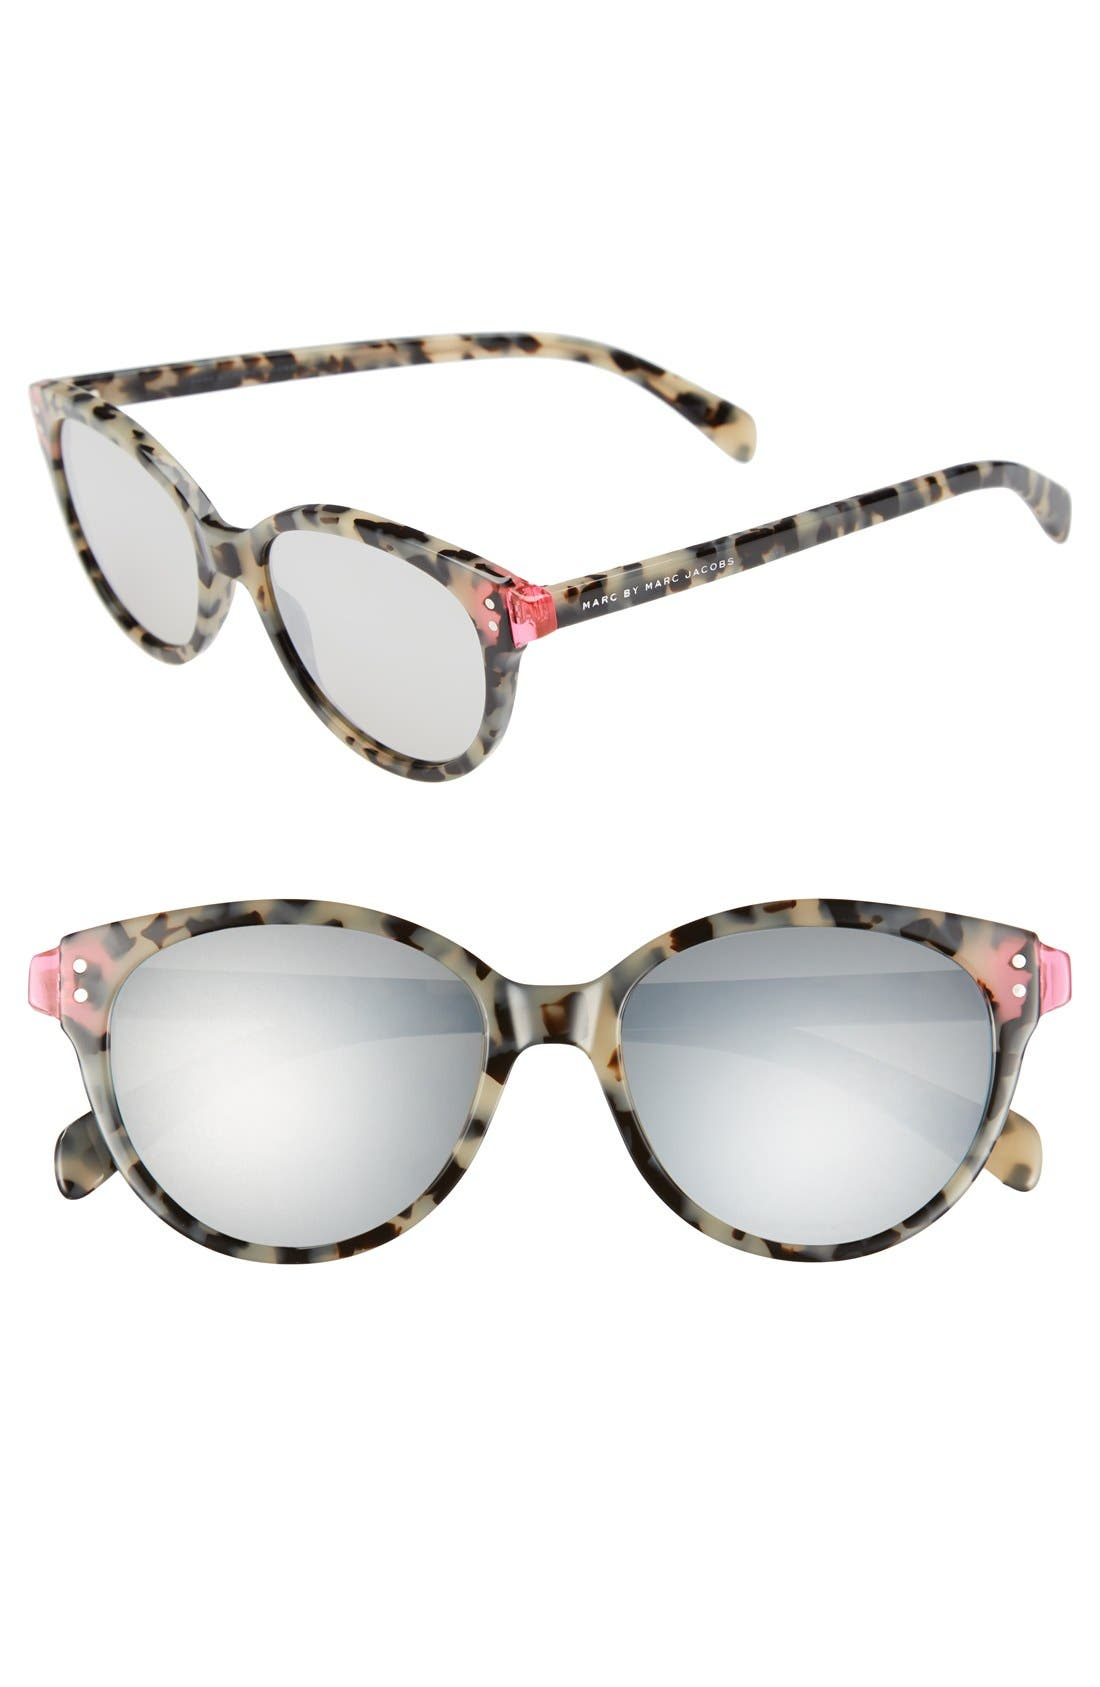 Alternate Image 1 Selected - MARC JACOBS 'Preppy' 51mm Retro Sunglasses